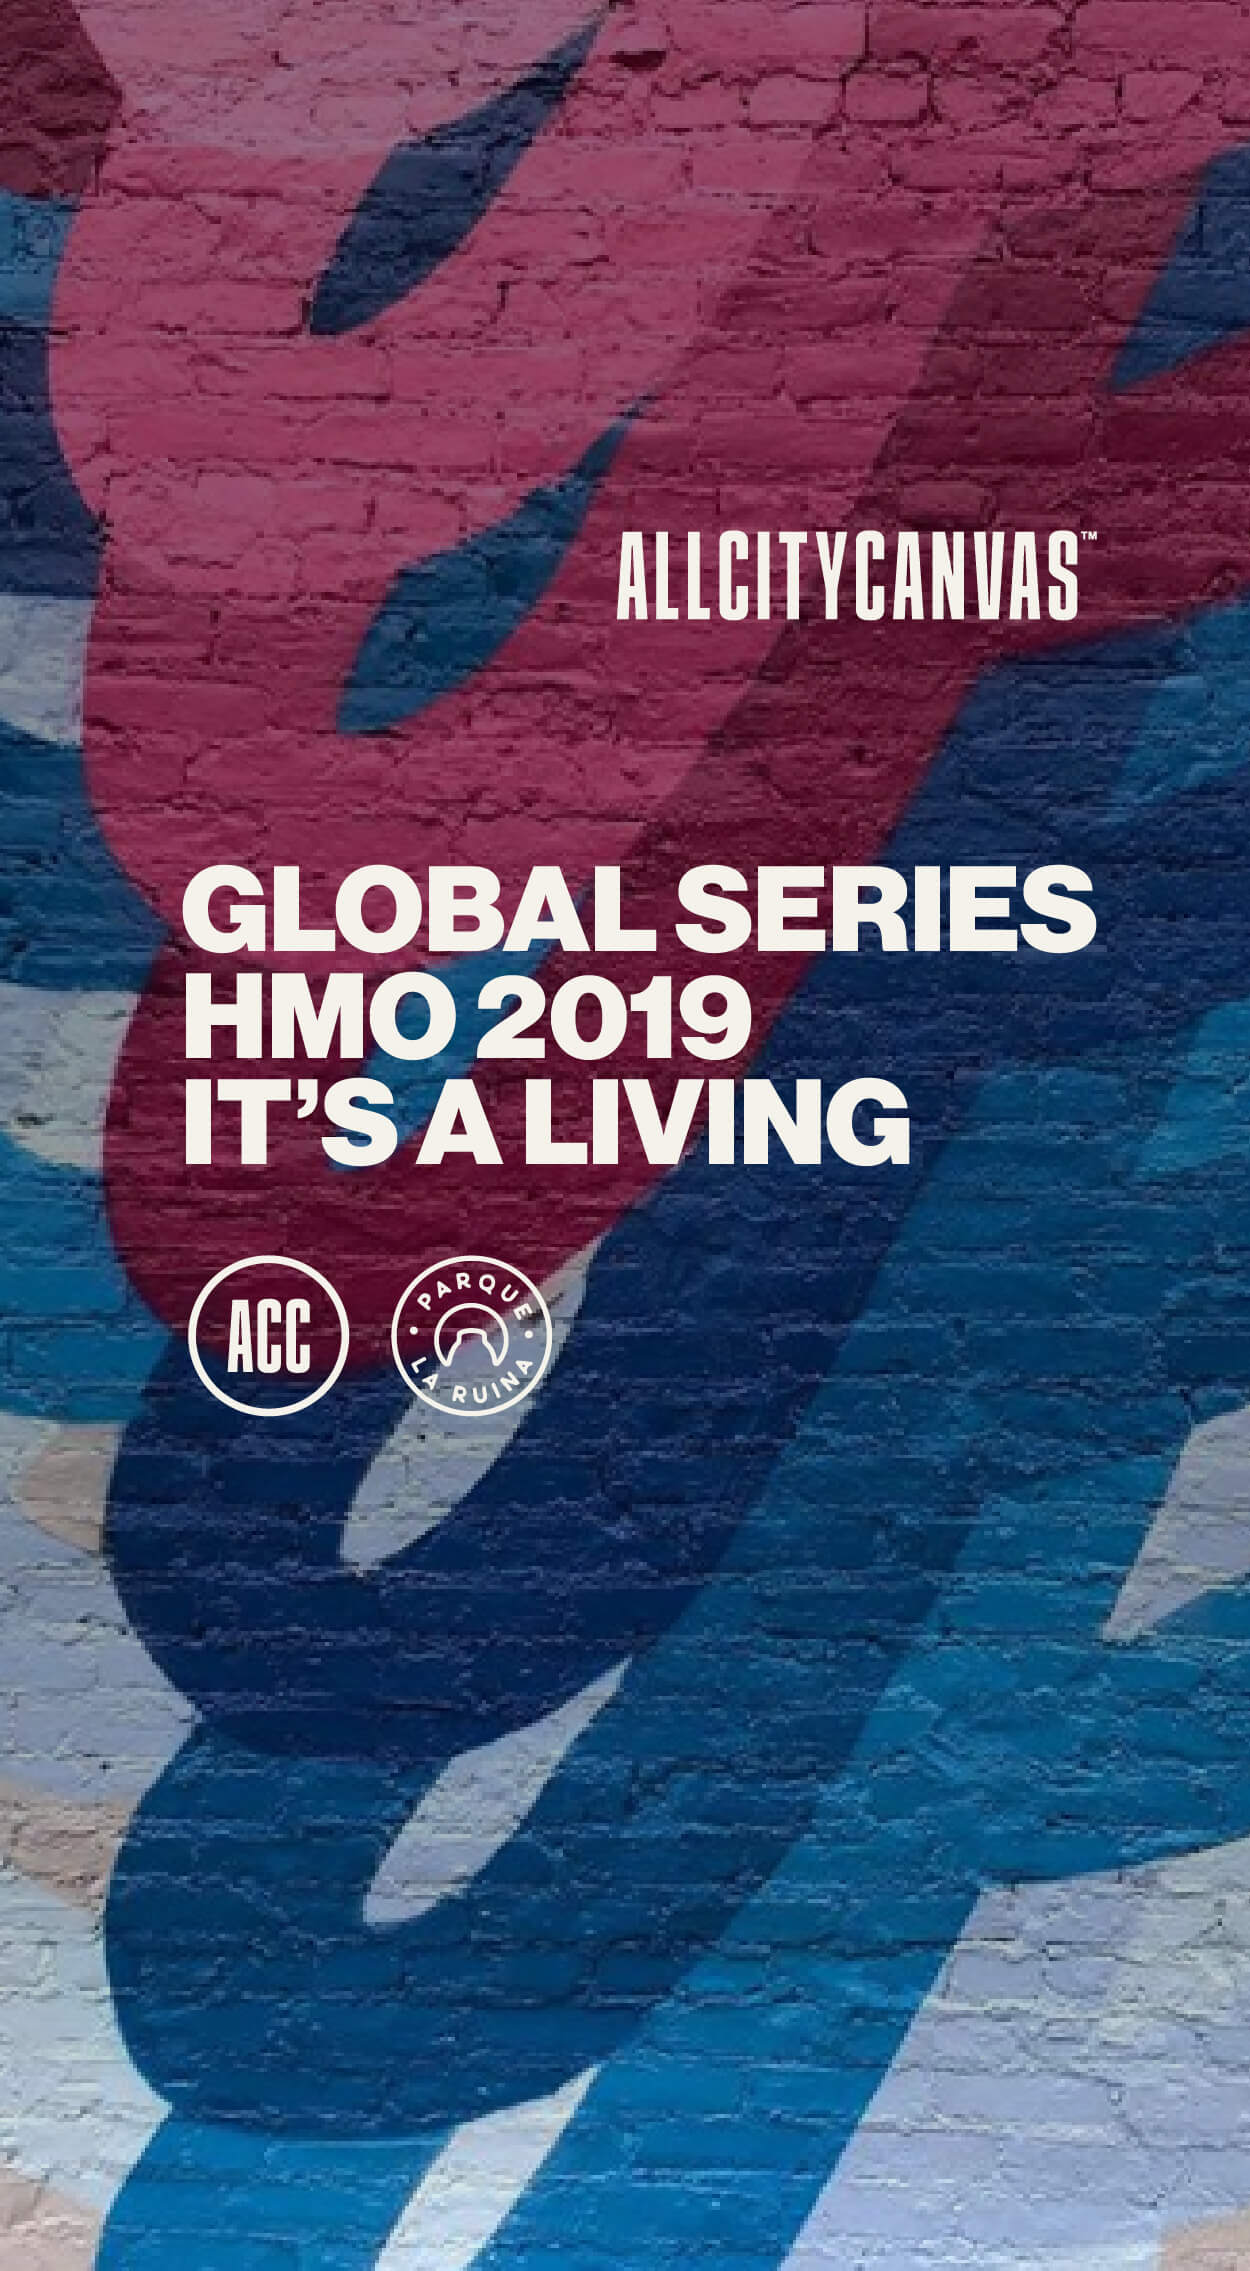 https://www.allcitycanvas.com/it-s-a-living-en-global-series-2019-parque-la-ruina/